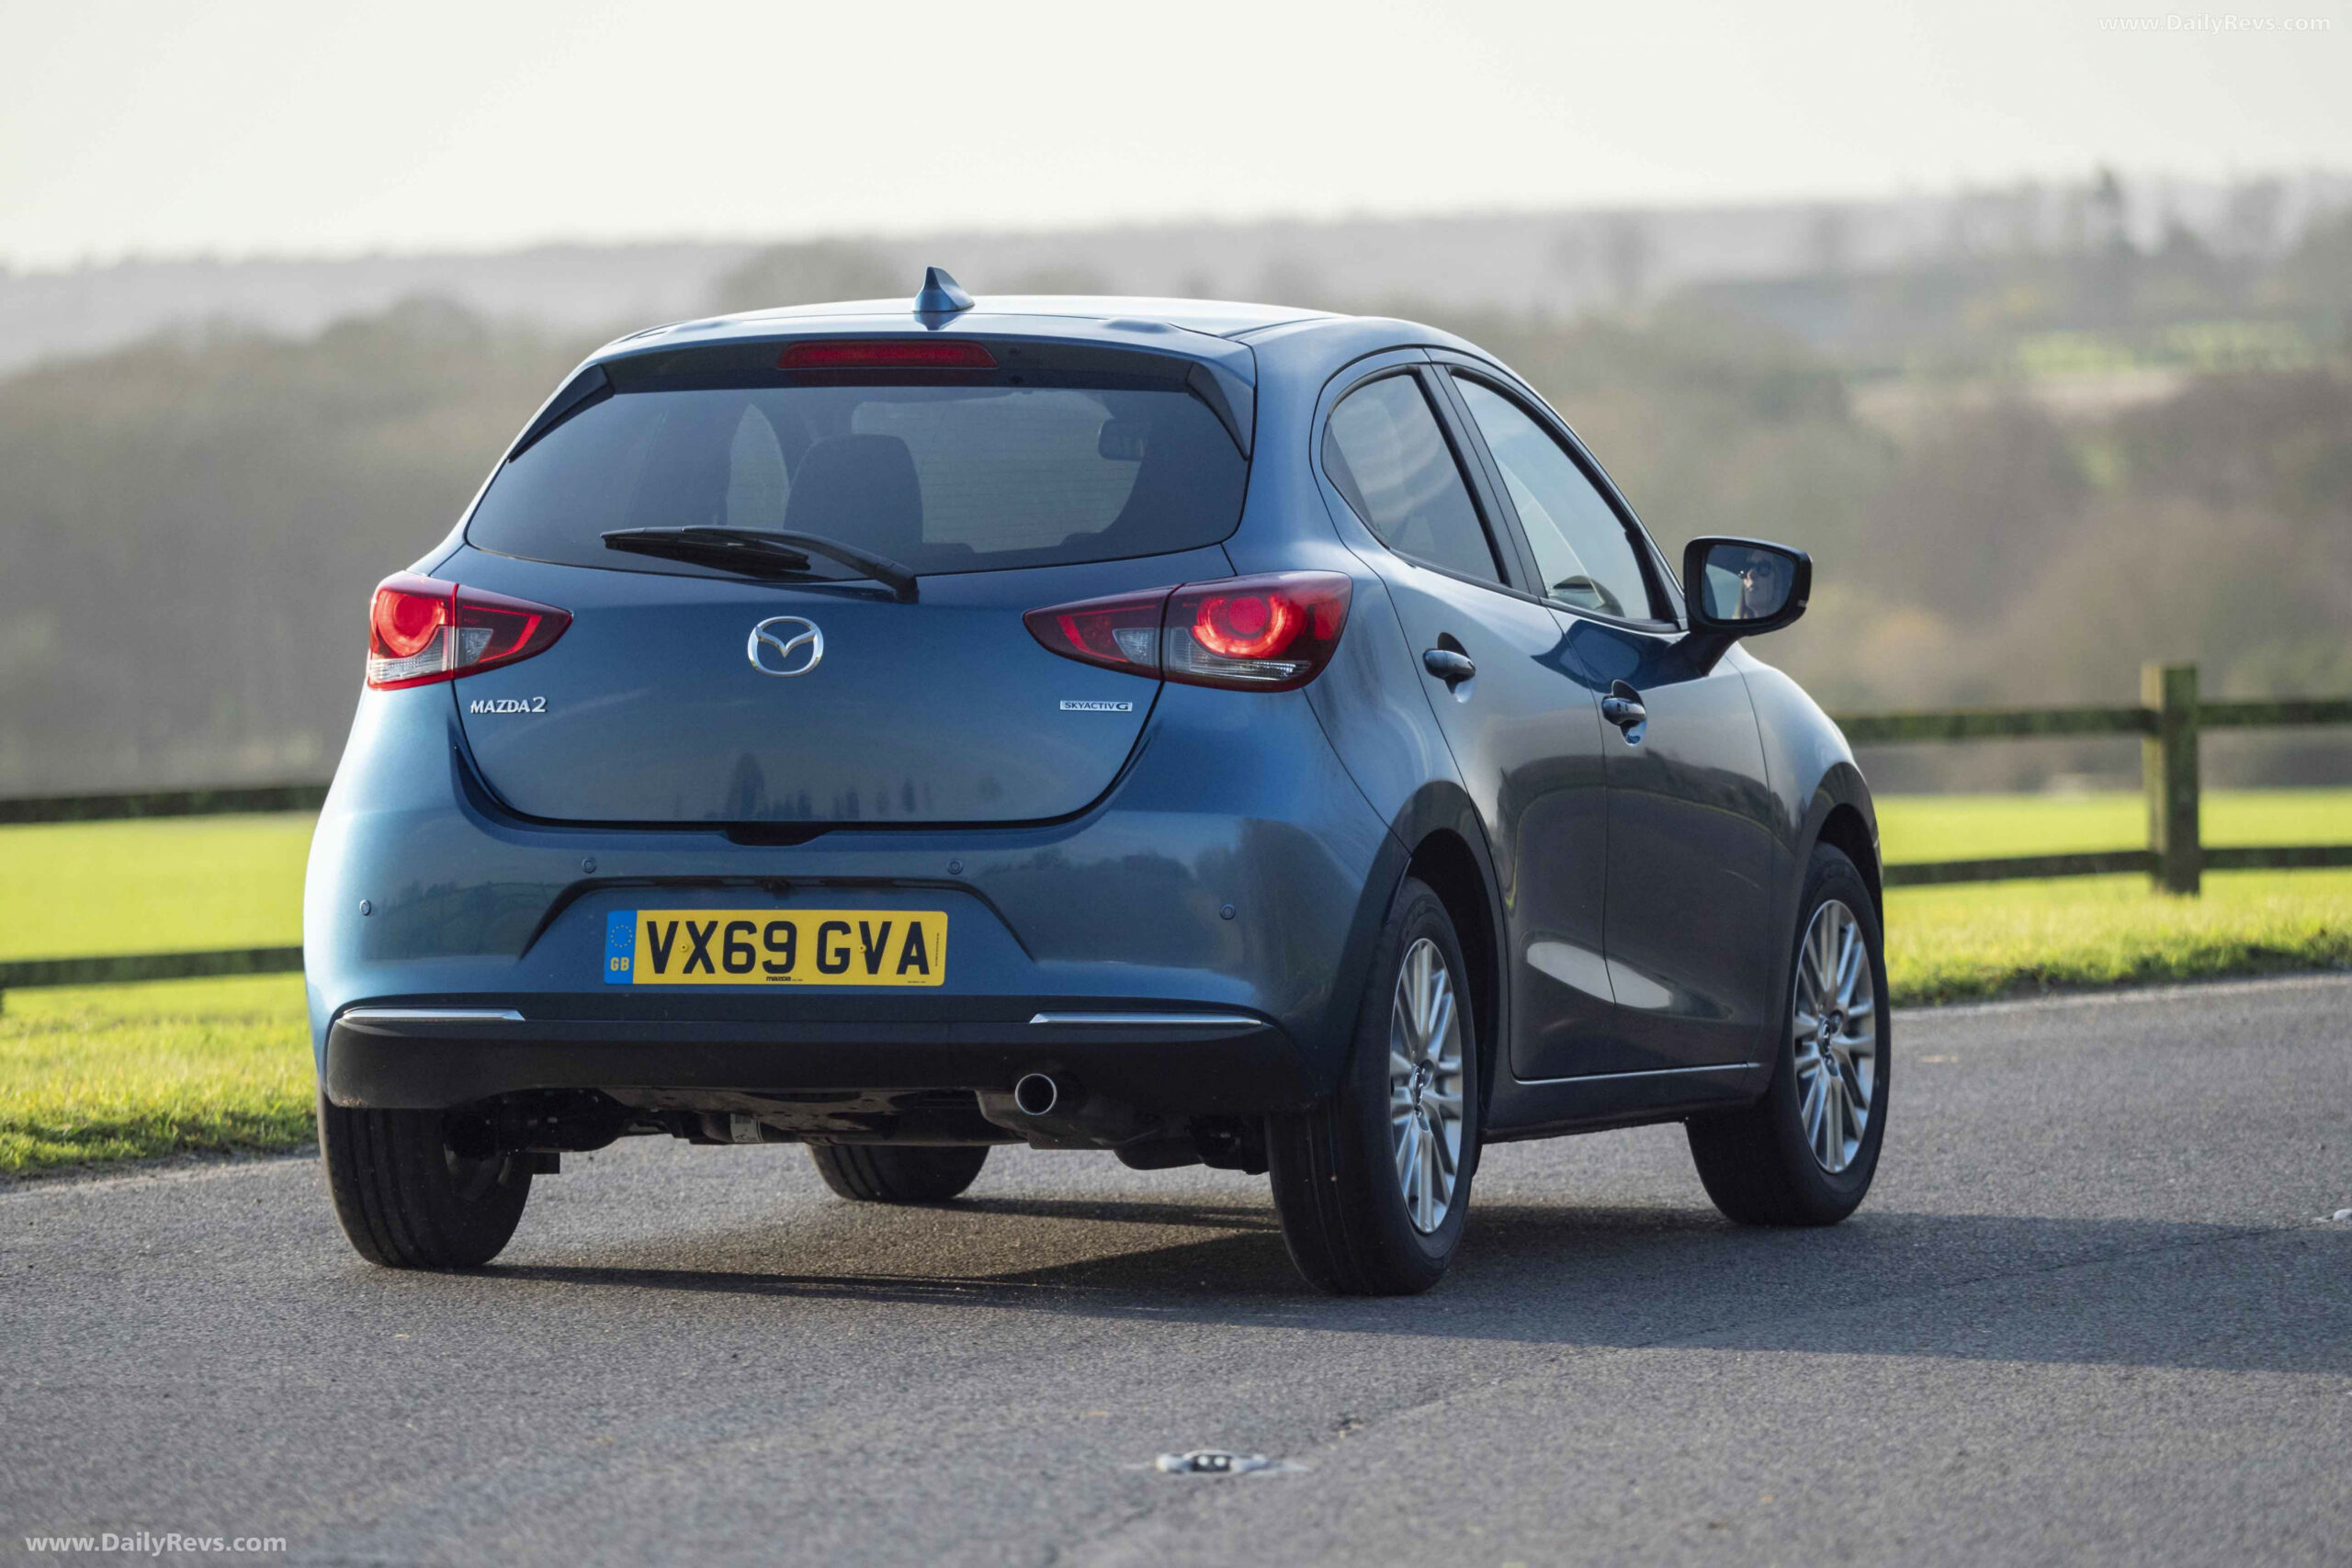 6 Mazda 6 [UK] - HD Pictures, Videos, Specs & Information ..